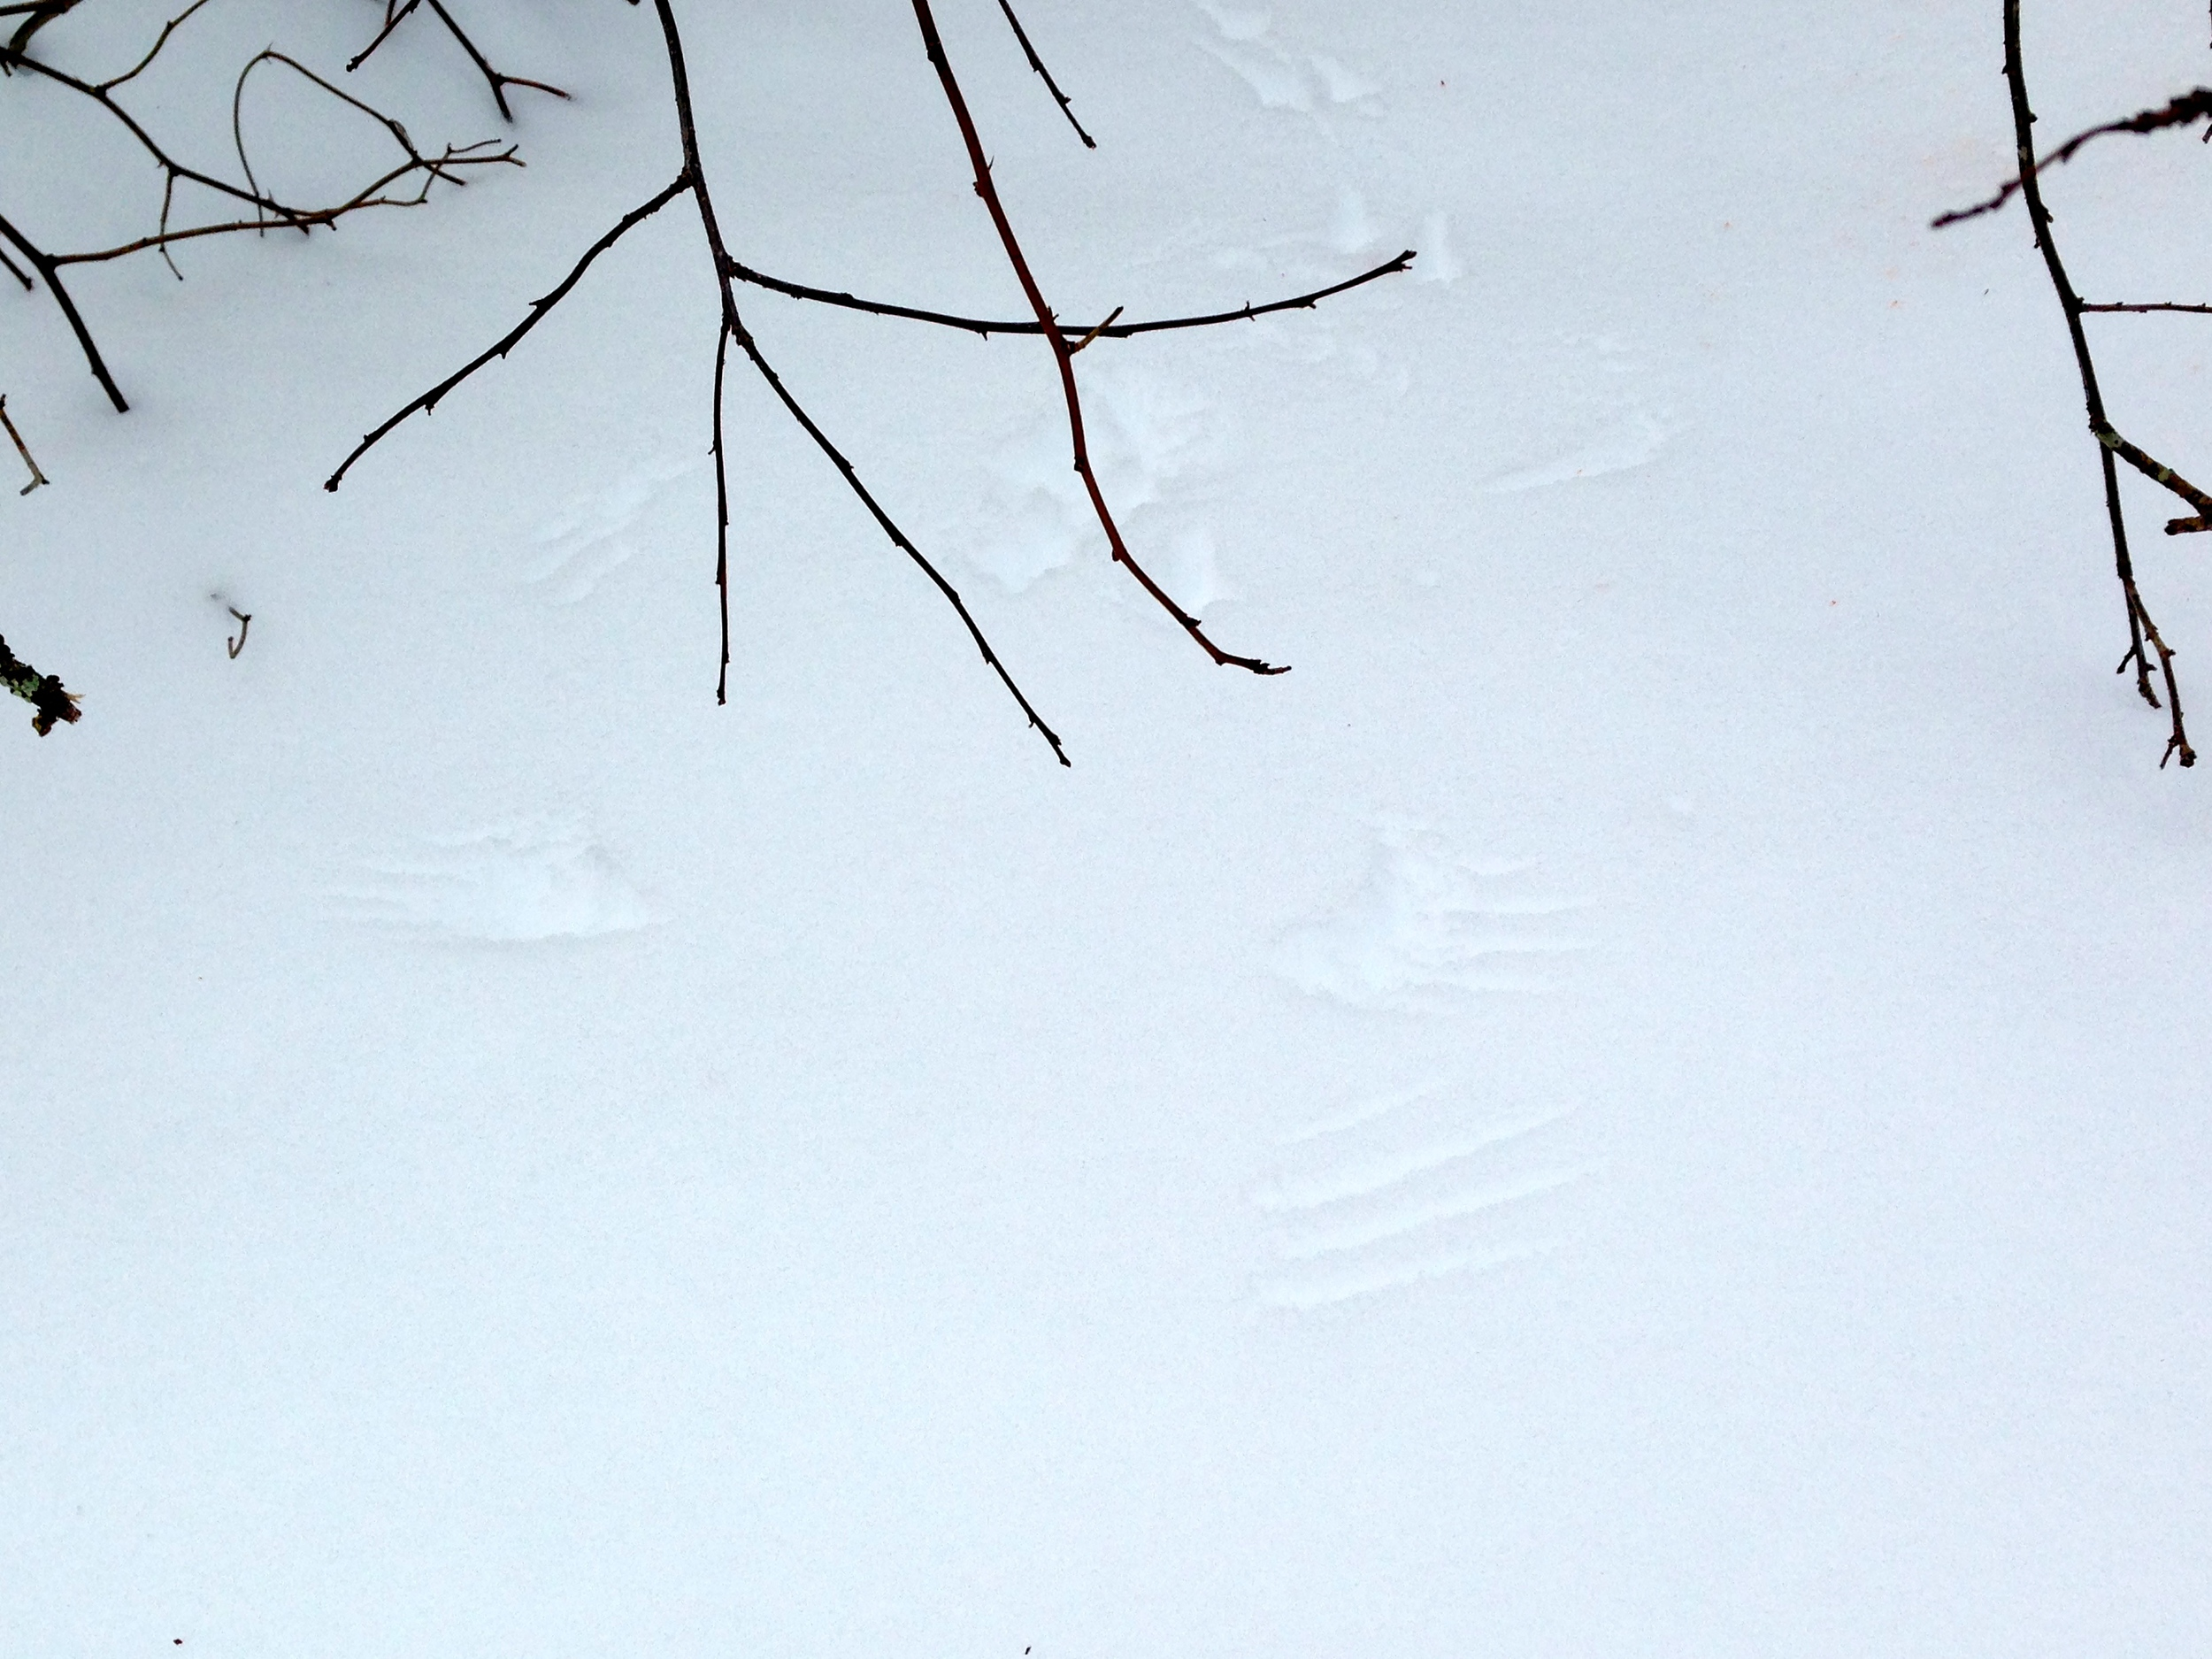 Raptor wing prints (center) intersect the trail of a small rodent, likely a mouse(top of page)